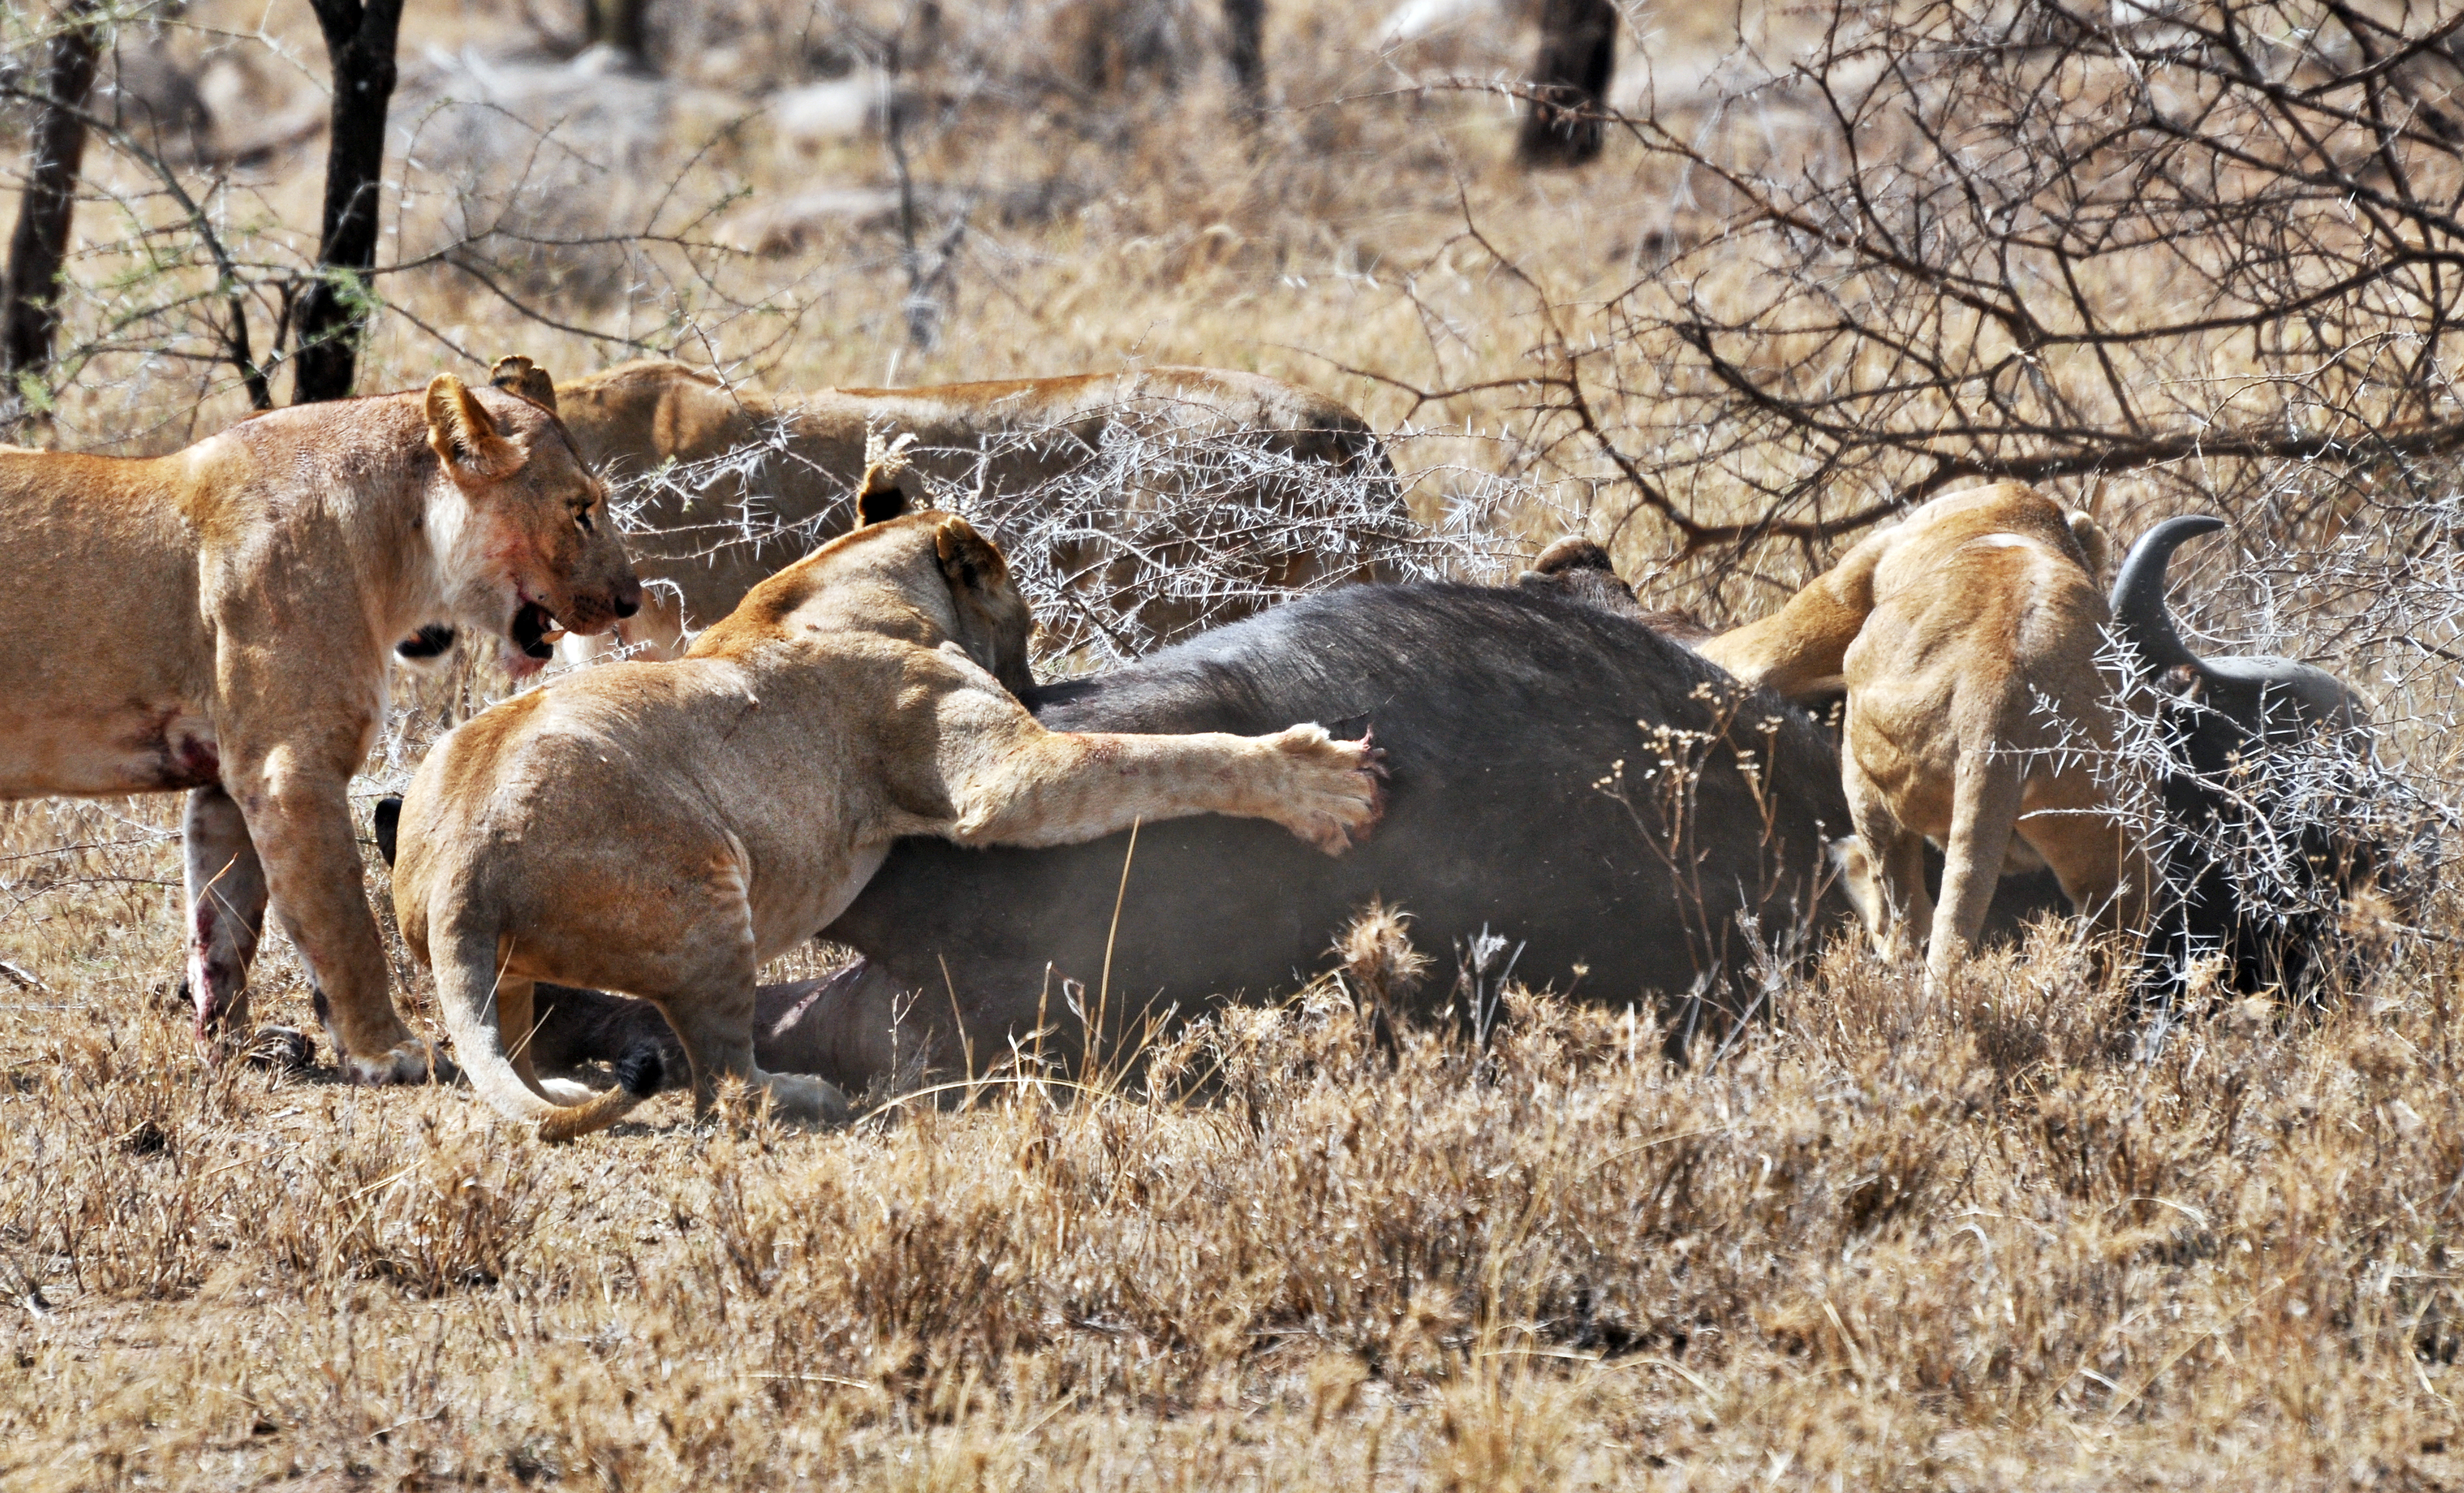 http://upload.wikimedia.org/wikipedia/commons/c/cd/Lions_taking_down_cape_buffalo.jpg